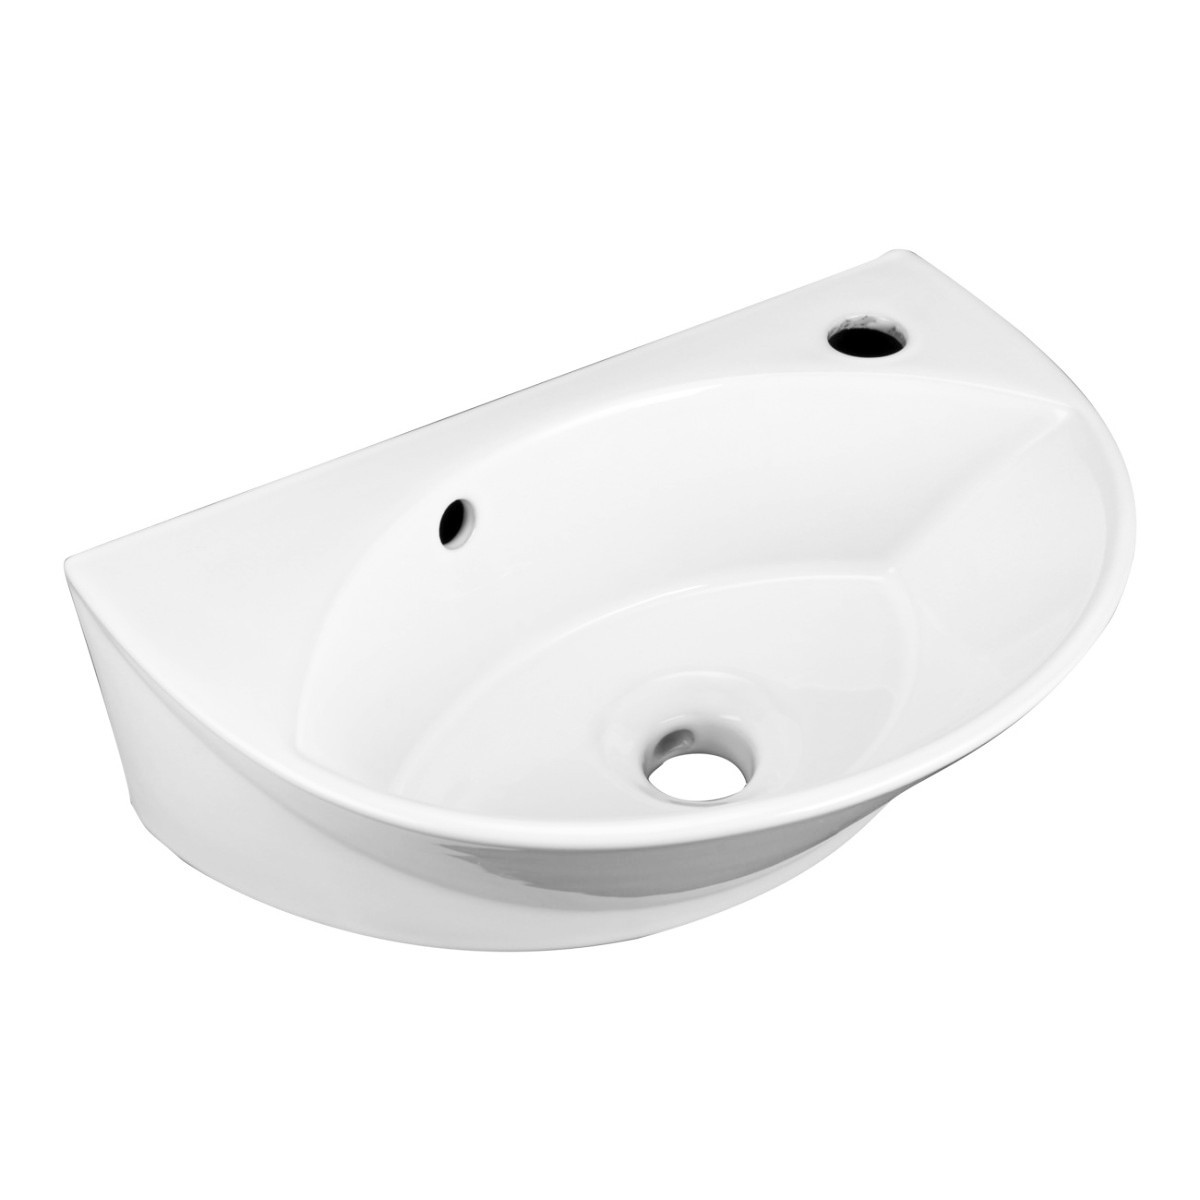 Counter Mounted Sink : Small Above Counter & Wall Mount Sink White Porcelain